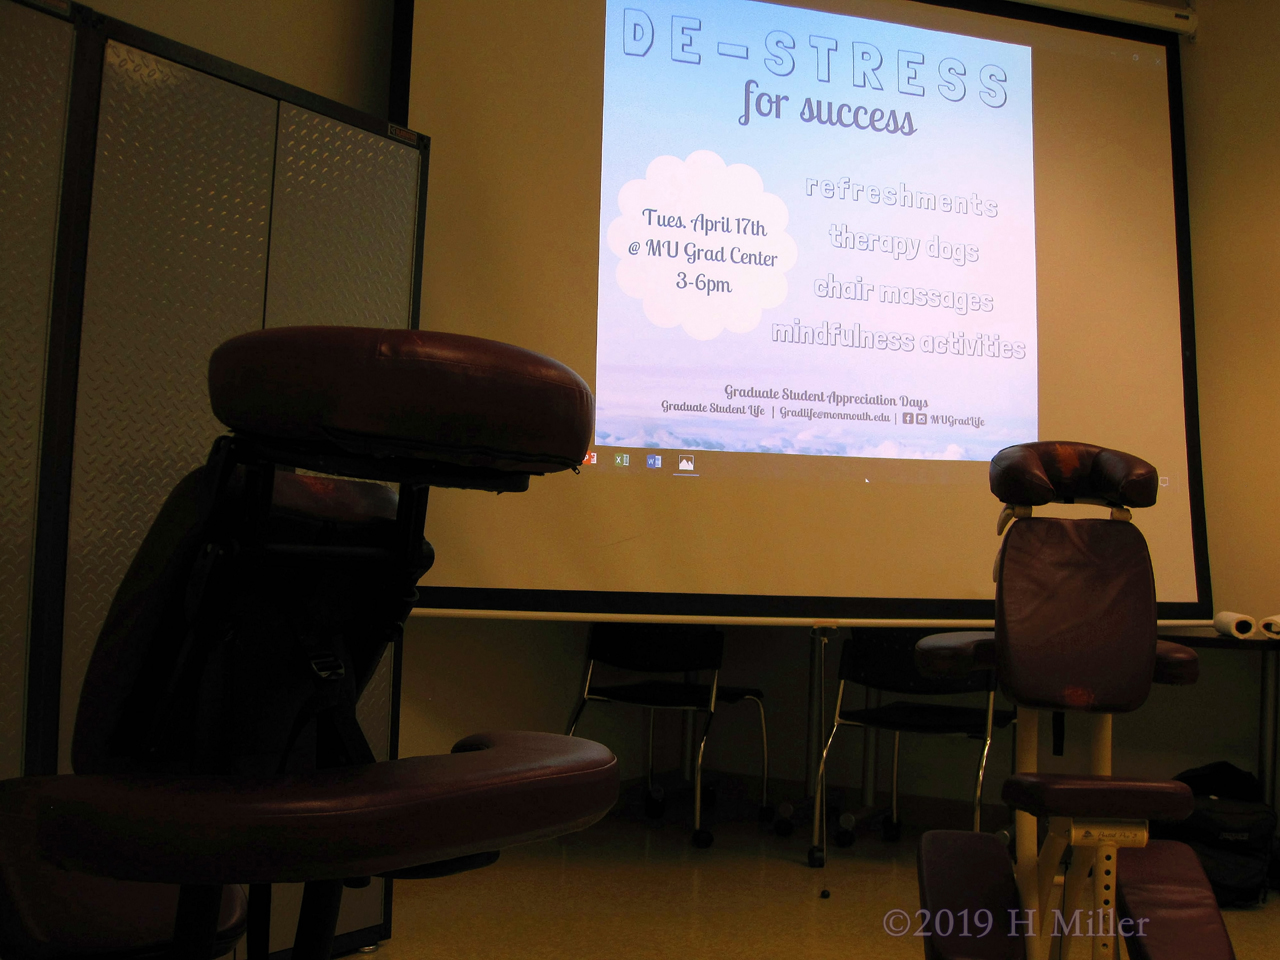 Chair Massage At The De-Stress For Success Event